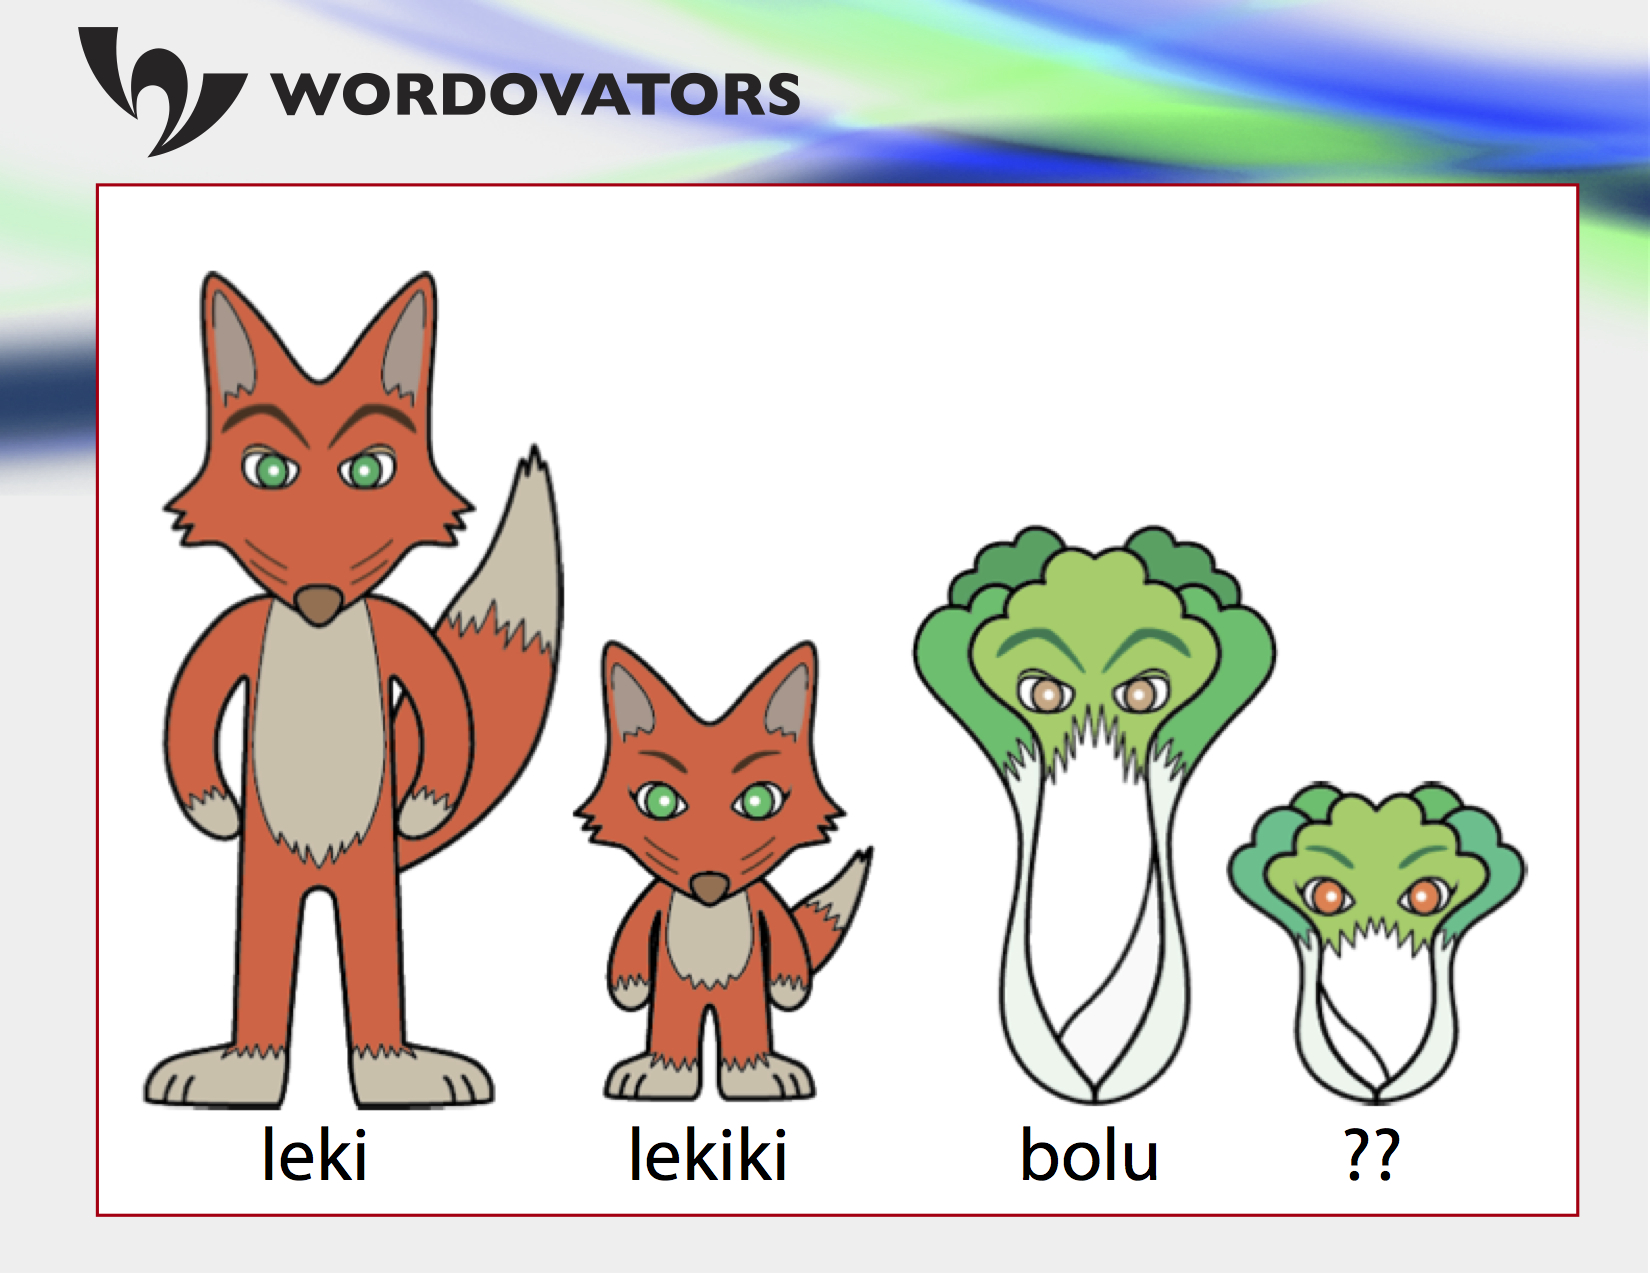 Wordovators: leki-lekiki; bolu-?